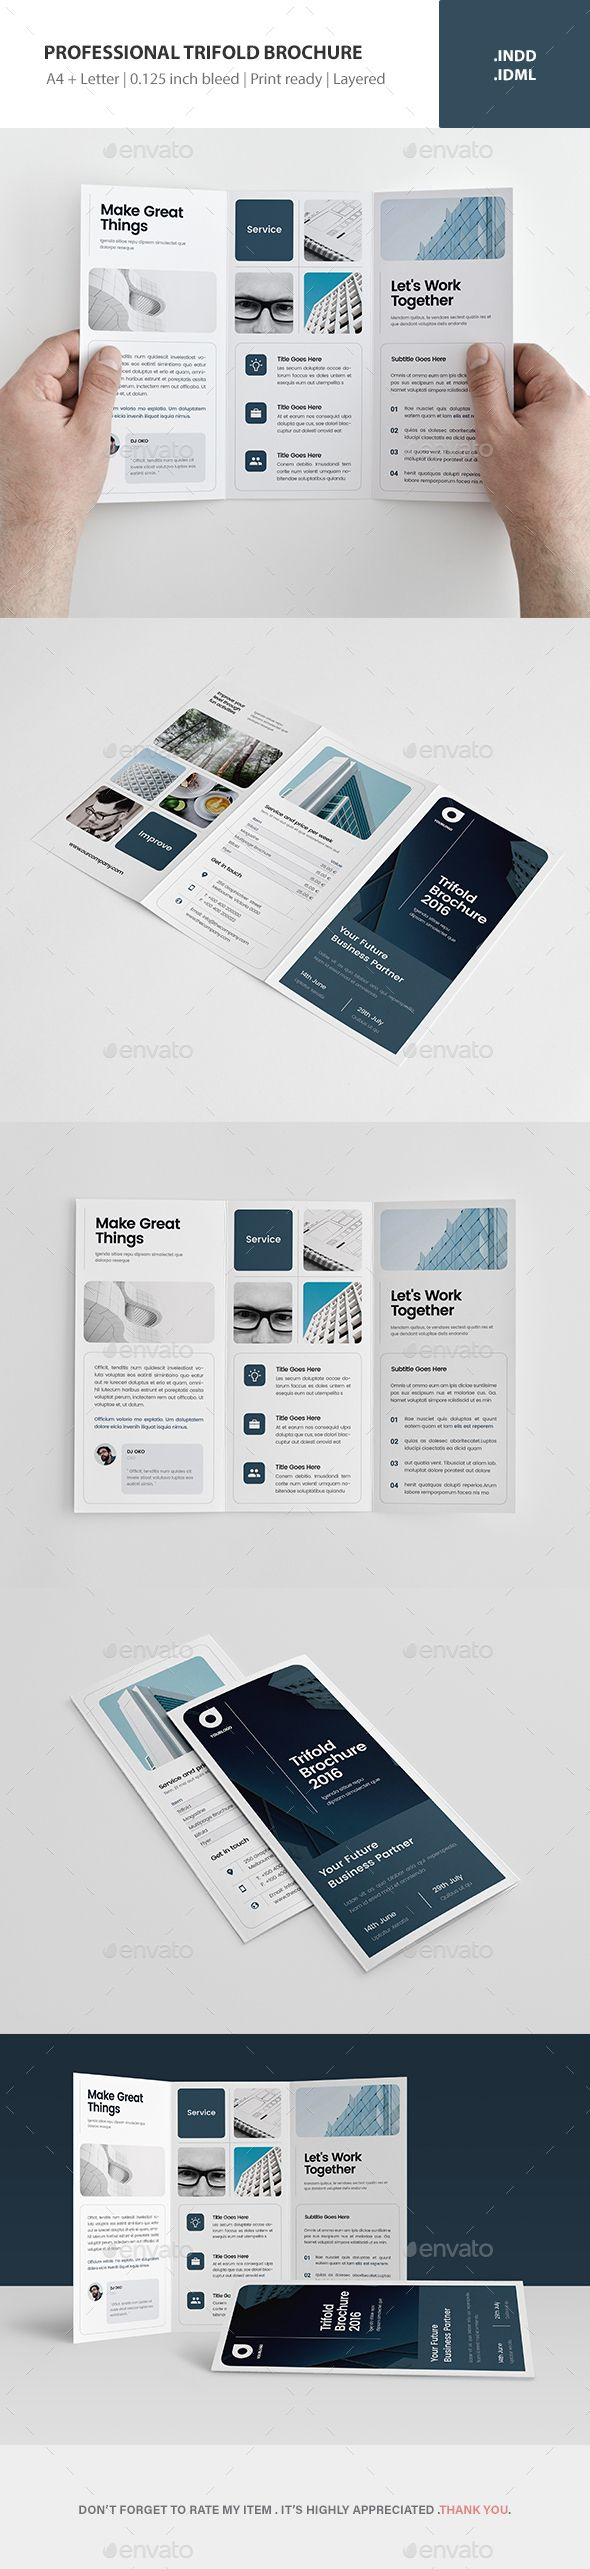 Professional Trifold Brochure Template InDesign INDD